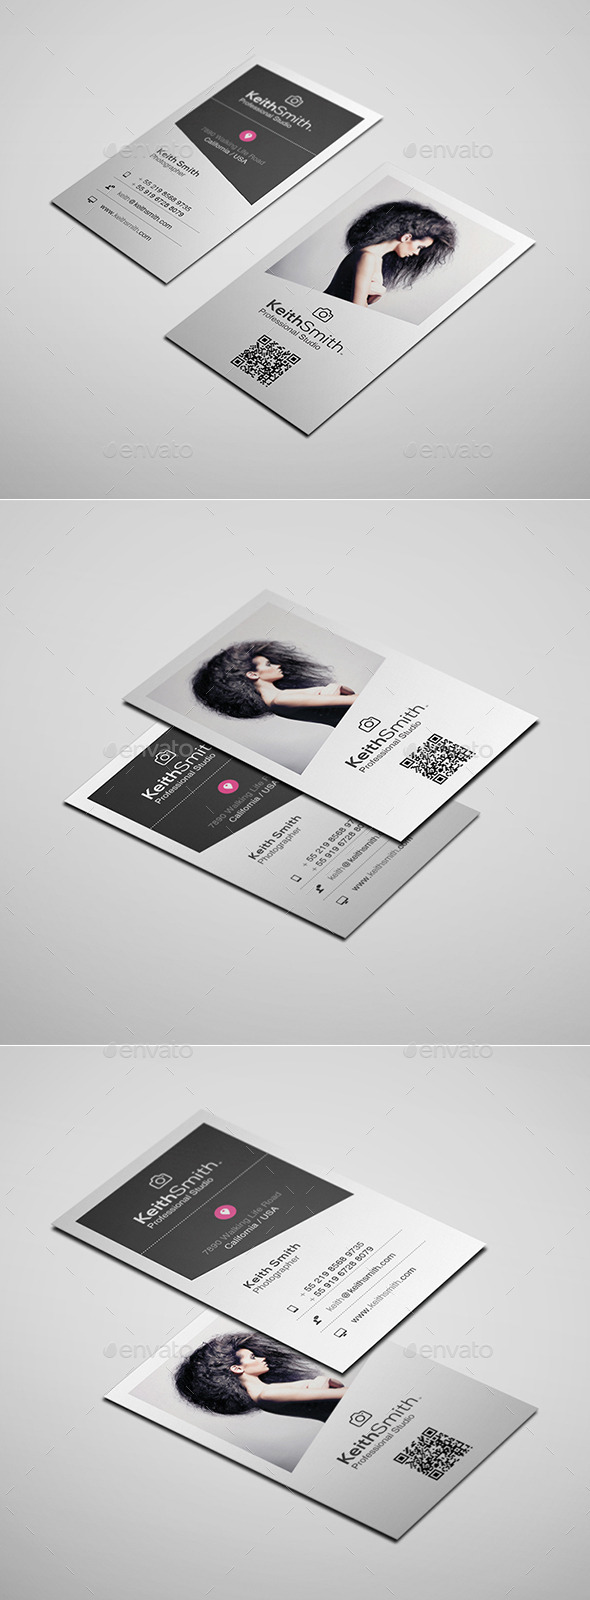 GraphicRiver Business Card Vol 08 11455687